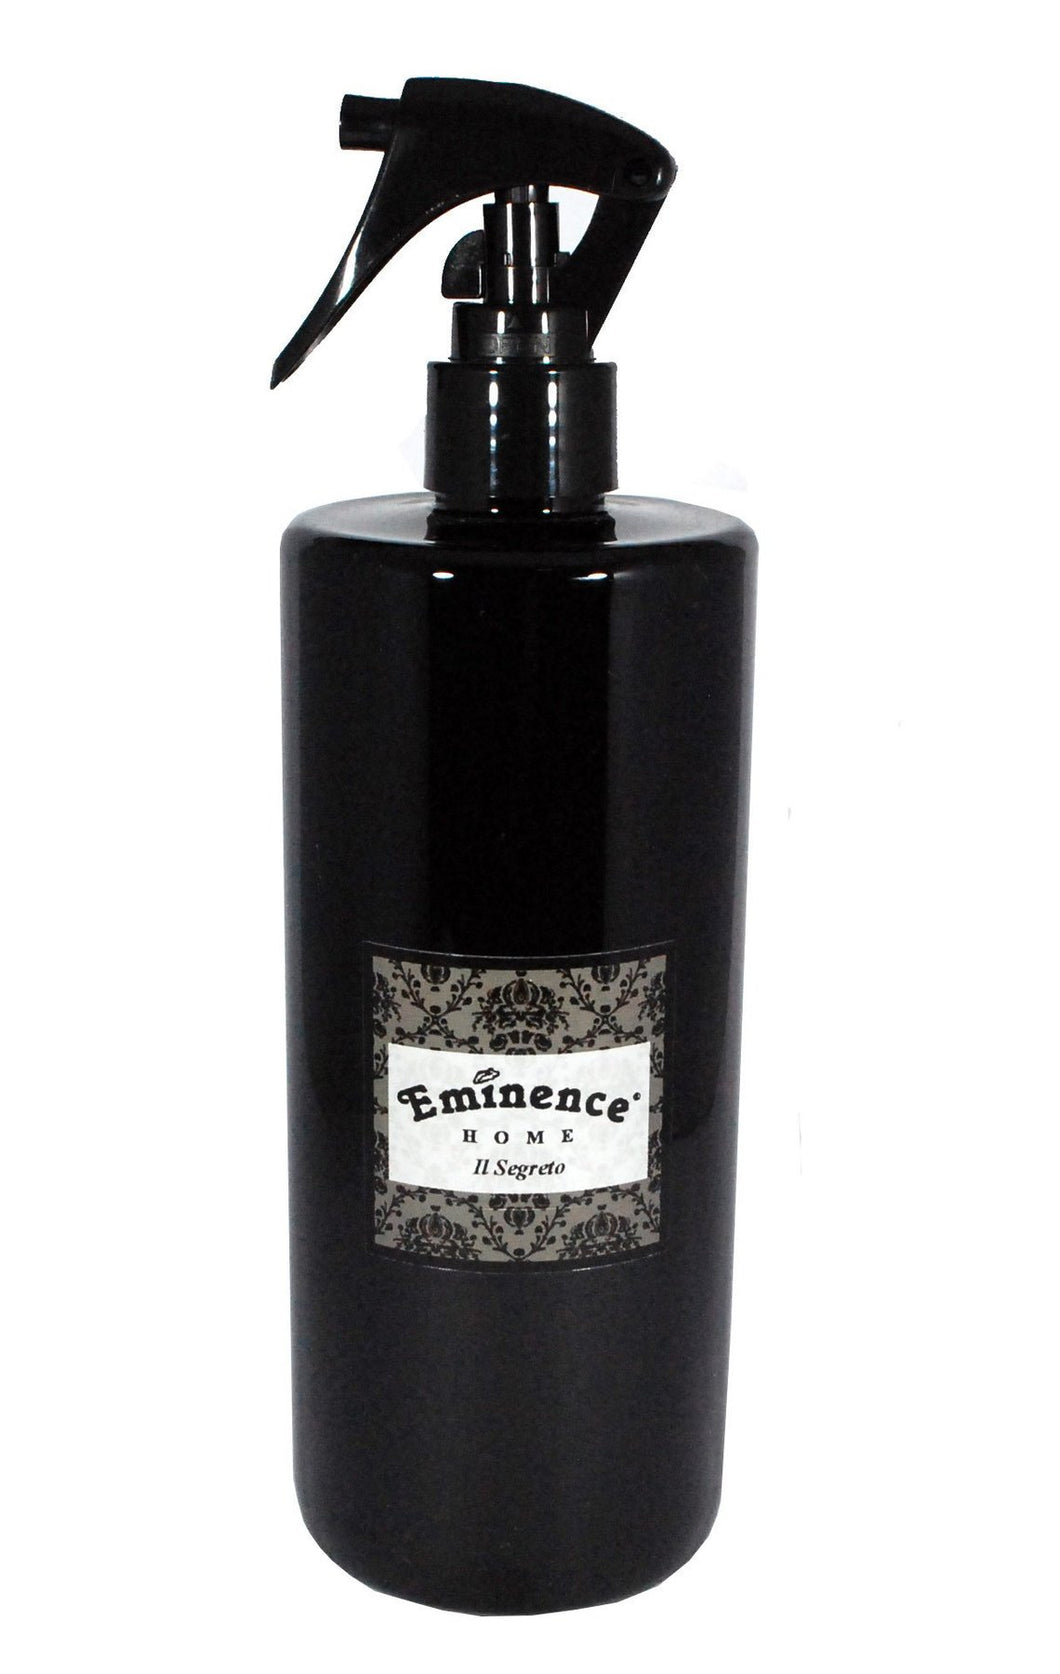 Eminence Home Spray-Il Segreto 500ml